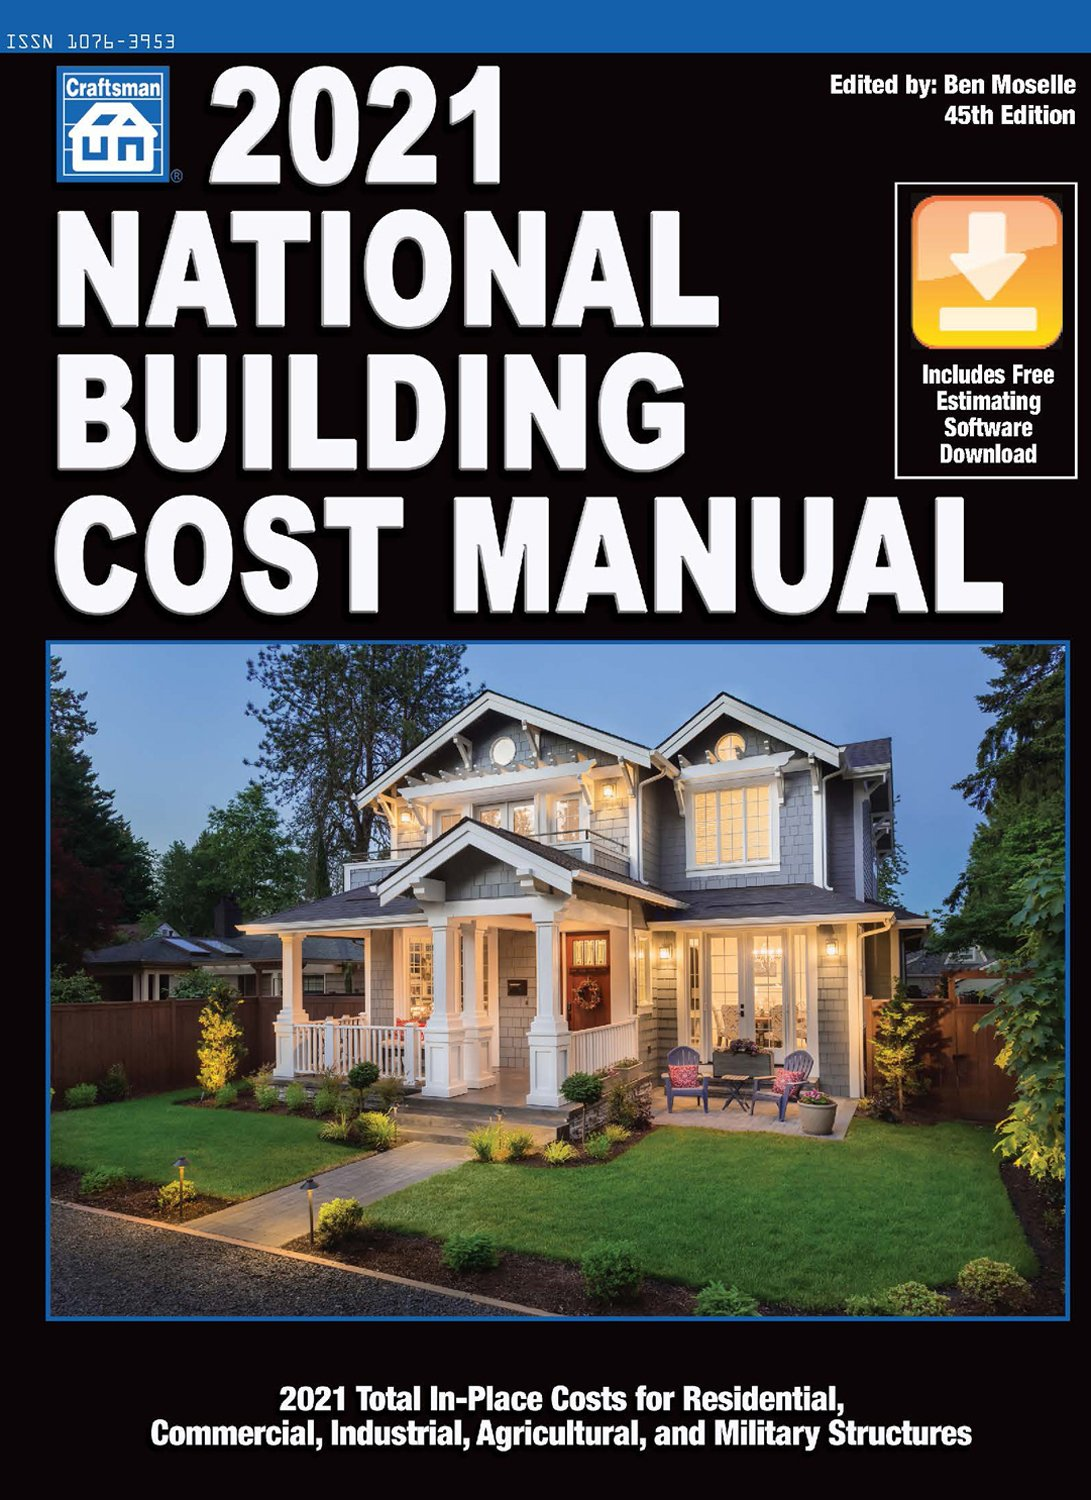 2021 National Building Cost Manual